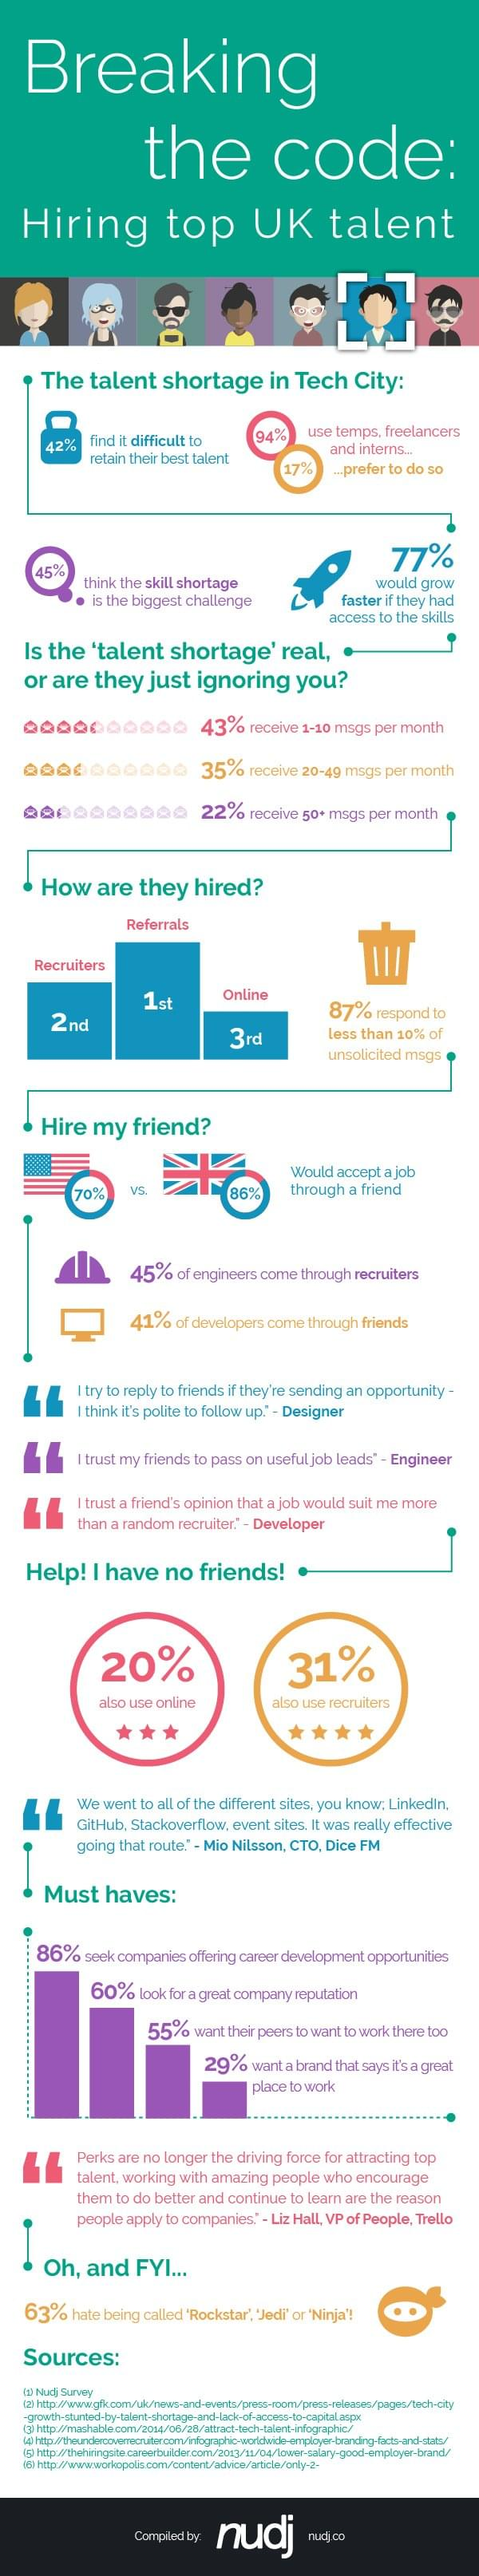 UK tech talent